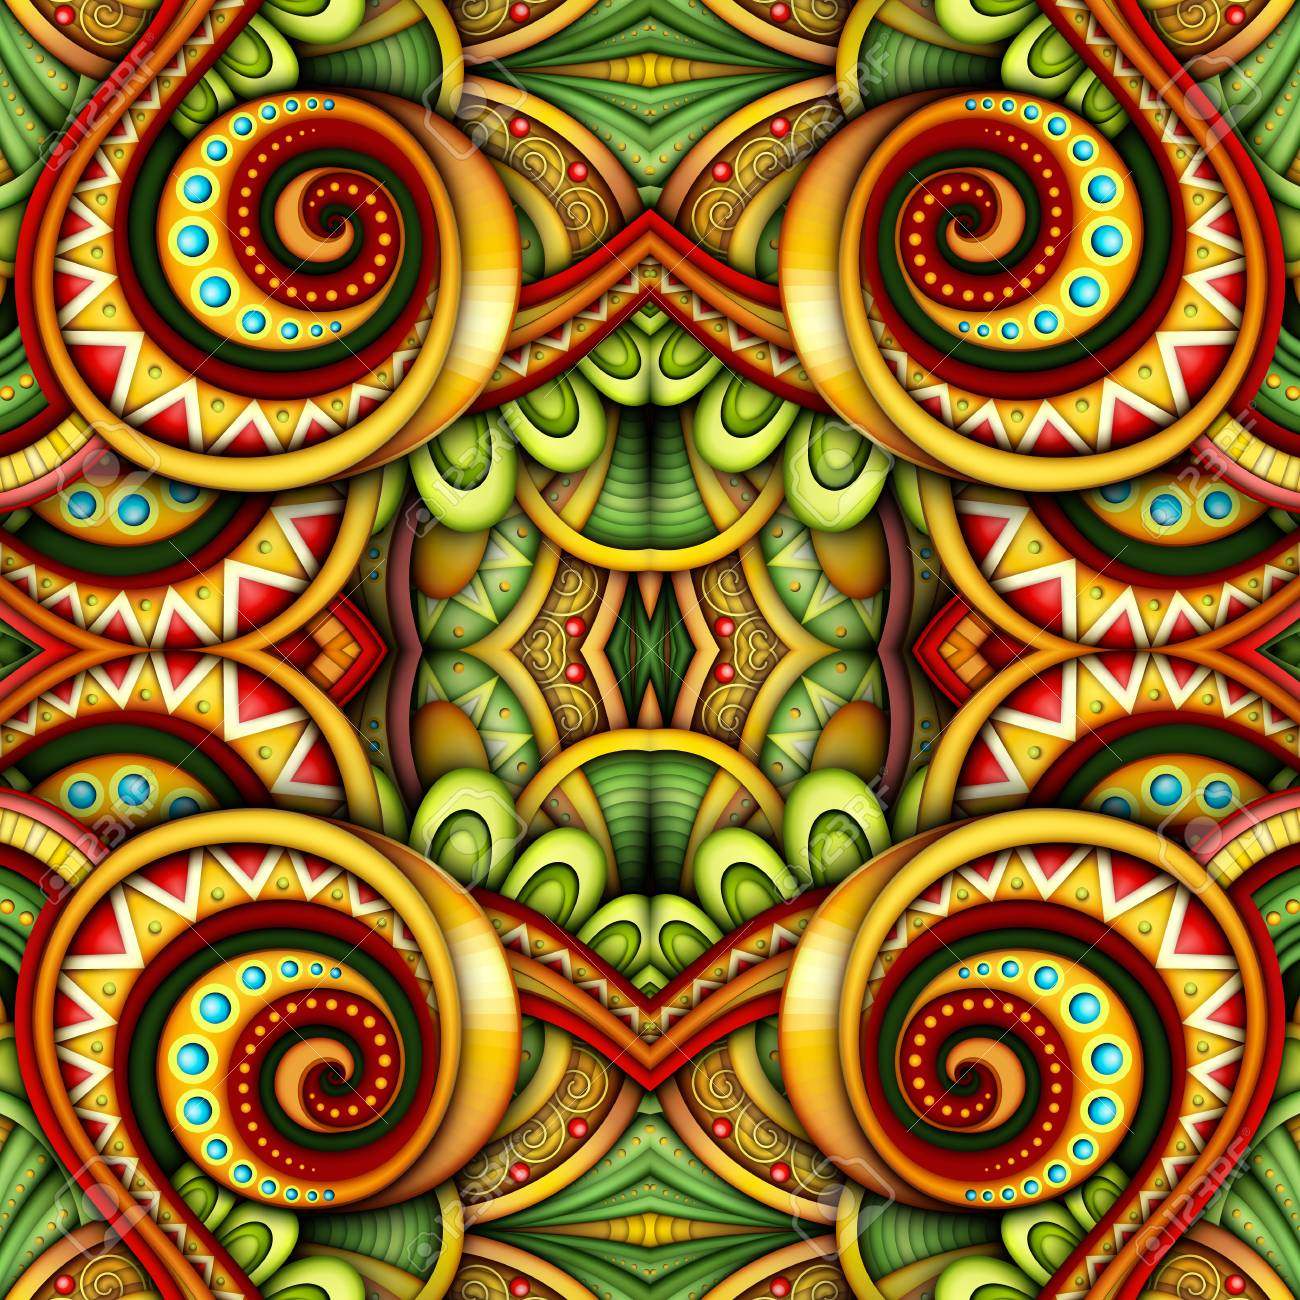 Colored Seamless Tile Pattern, Fantastic Kaleidoscope. Endless Ethnic Texture with Abstract Design Element. Khokhloma, Gypsy, Paisley Garden Style. Realistic Glossy Ornament. Vector 3d Illustration - 126287382